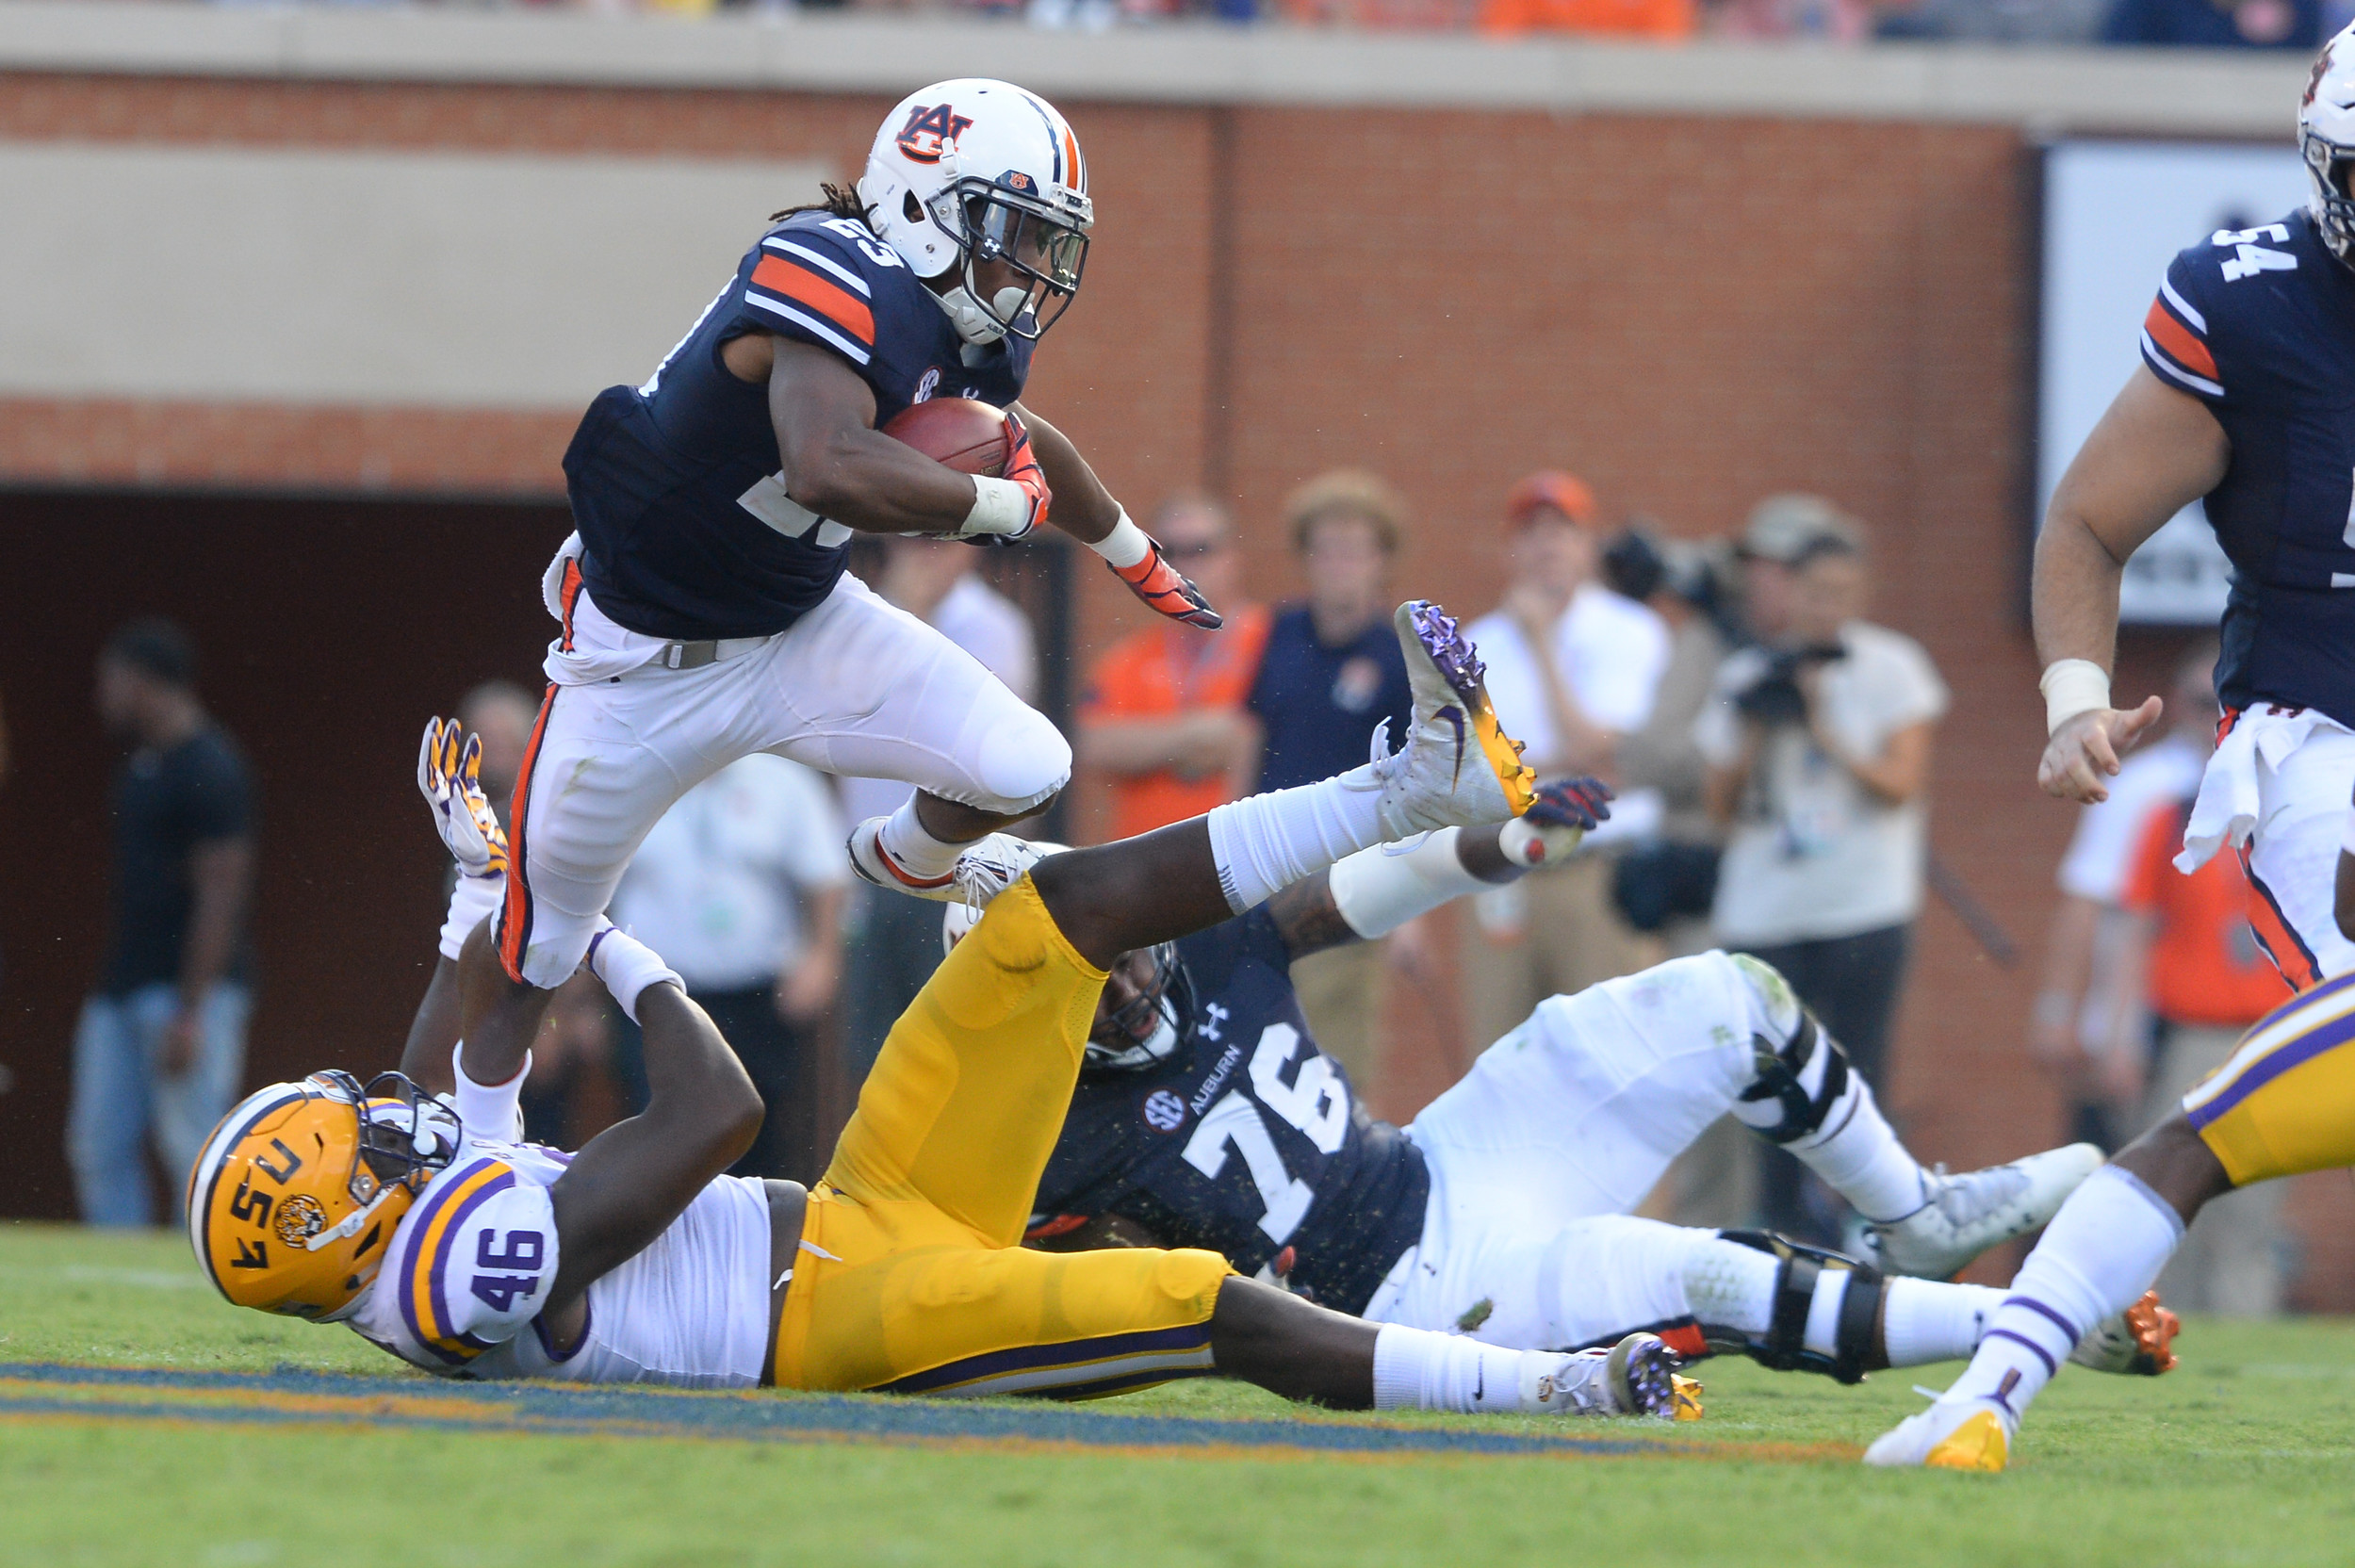 Auburn Tigers wide receiver Ryan Davis (23) breaks the tackle of LSU Tigers linebacker Andre Anthony (46) during the second during the first half of Saturday's game, at Jordan Hare Stadium in Auburn. (Contributed by Jeff Johnsey)